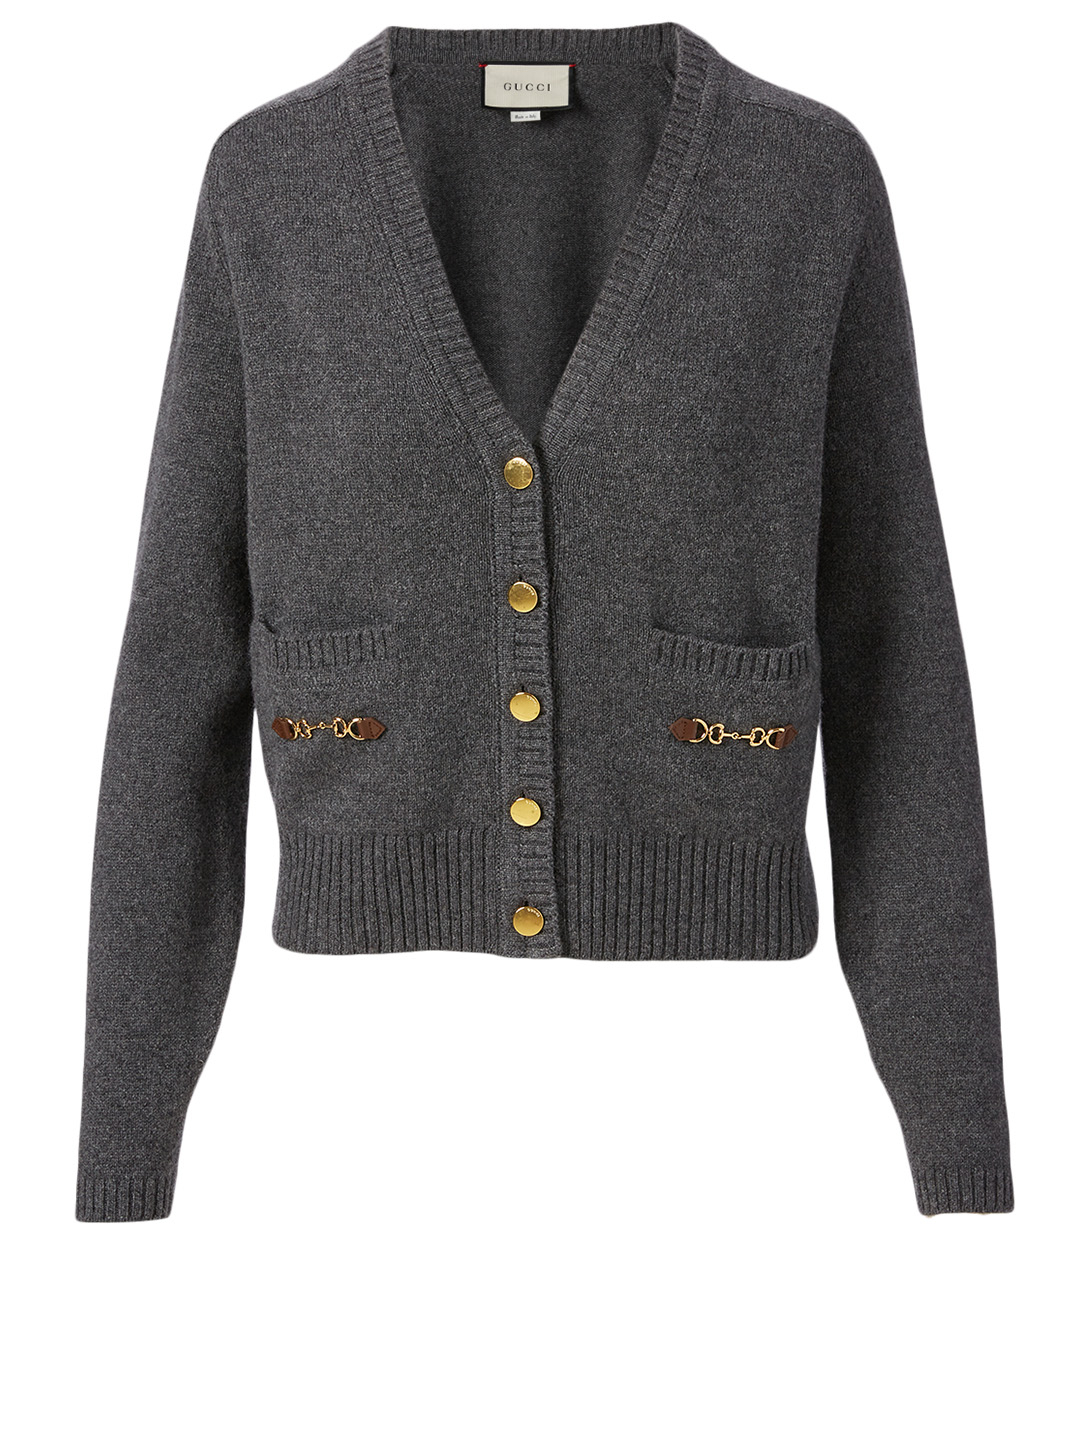 GUCCI Cashmere Cardigan With Horsebit Detail Women's Grey